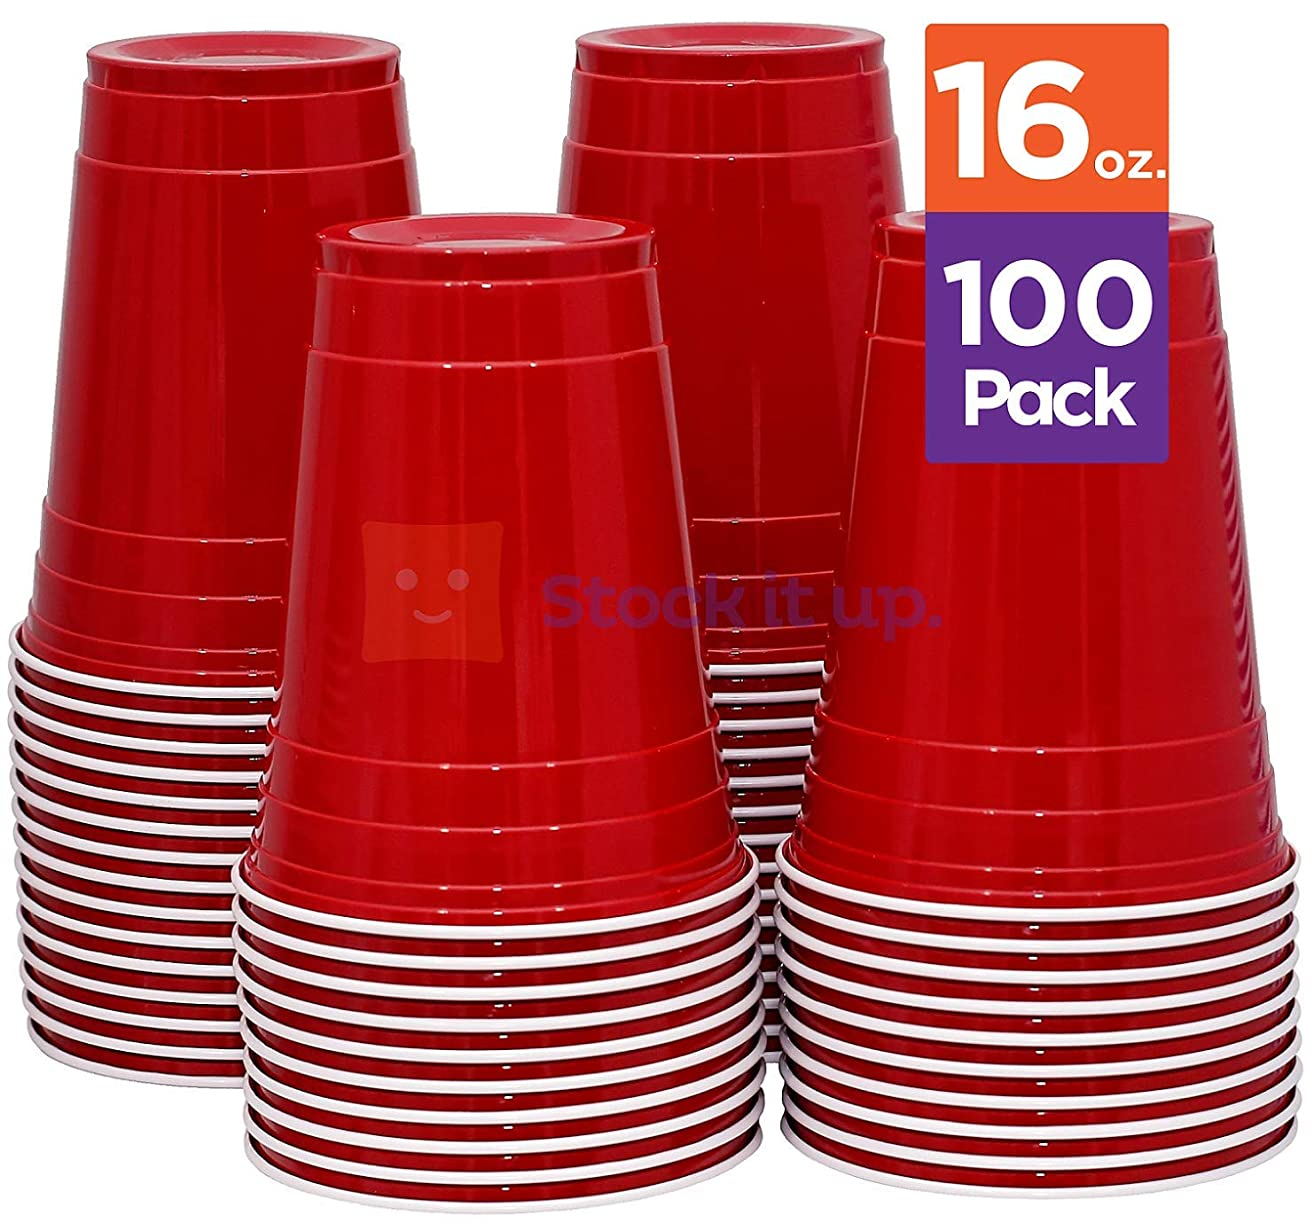 Stack Man [ 16 oz-100 Pack] Red Party Cups, Cold Drink Plastic Disposable, 16 oz,